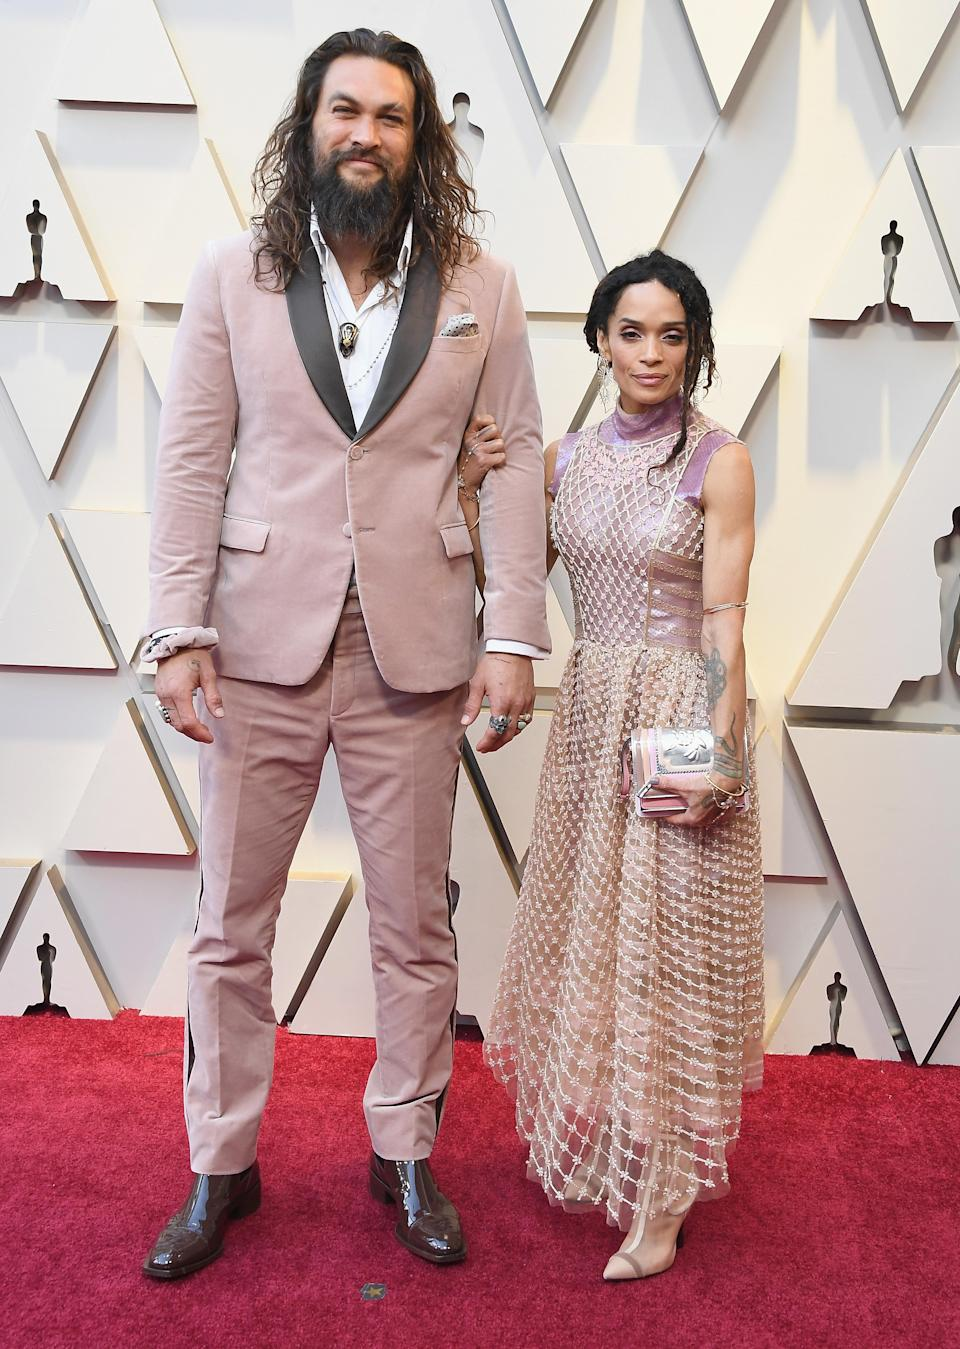 Jason Momoa and Lisa Bonet attend the 91st Annual Academy Awards on Feb. 24, 2019, in Hollywood, Calif. (Photo: Getty Images)